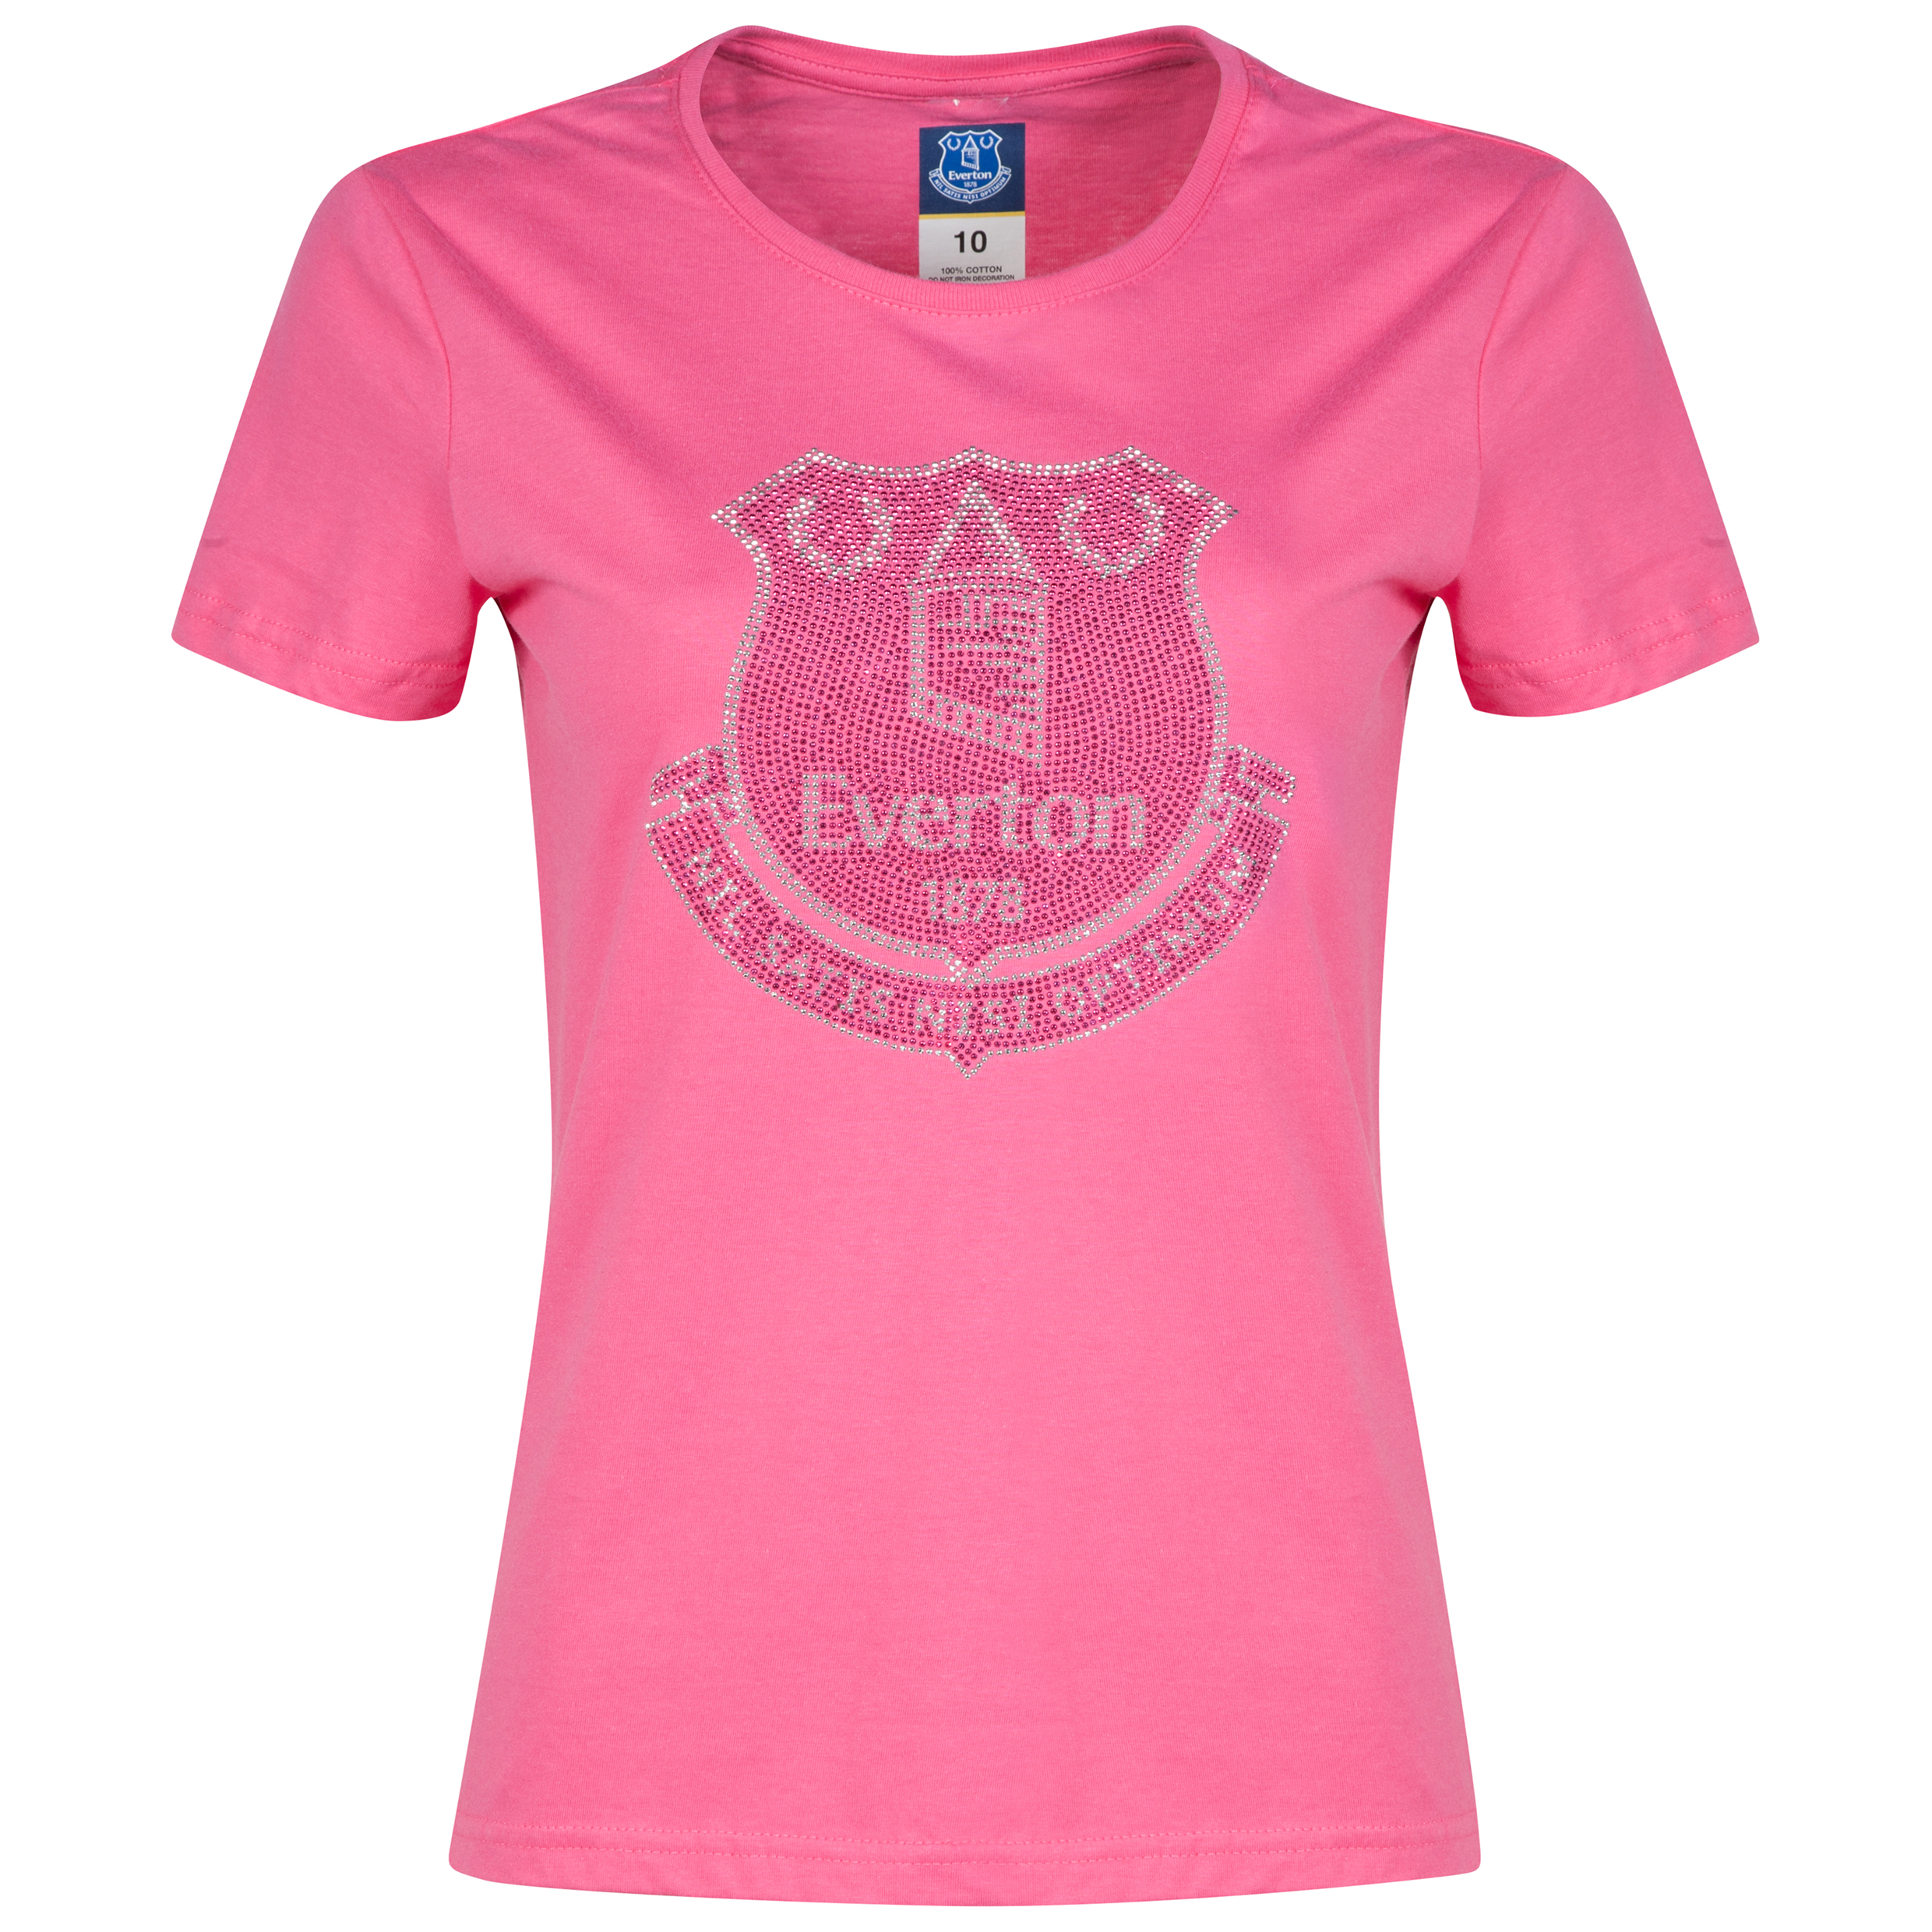 Everton Rhinestone-T-Shirt - Pink - Womens